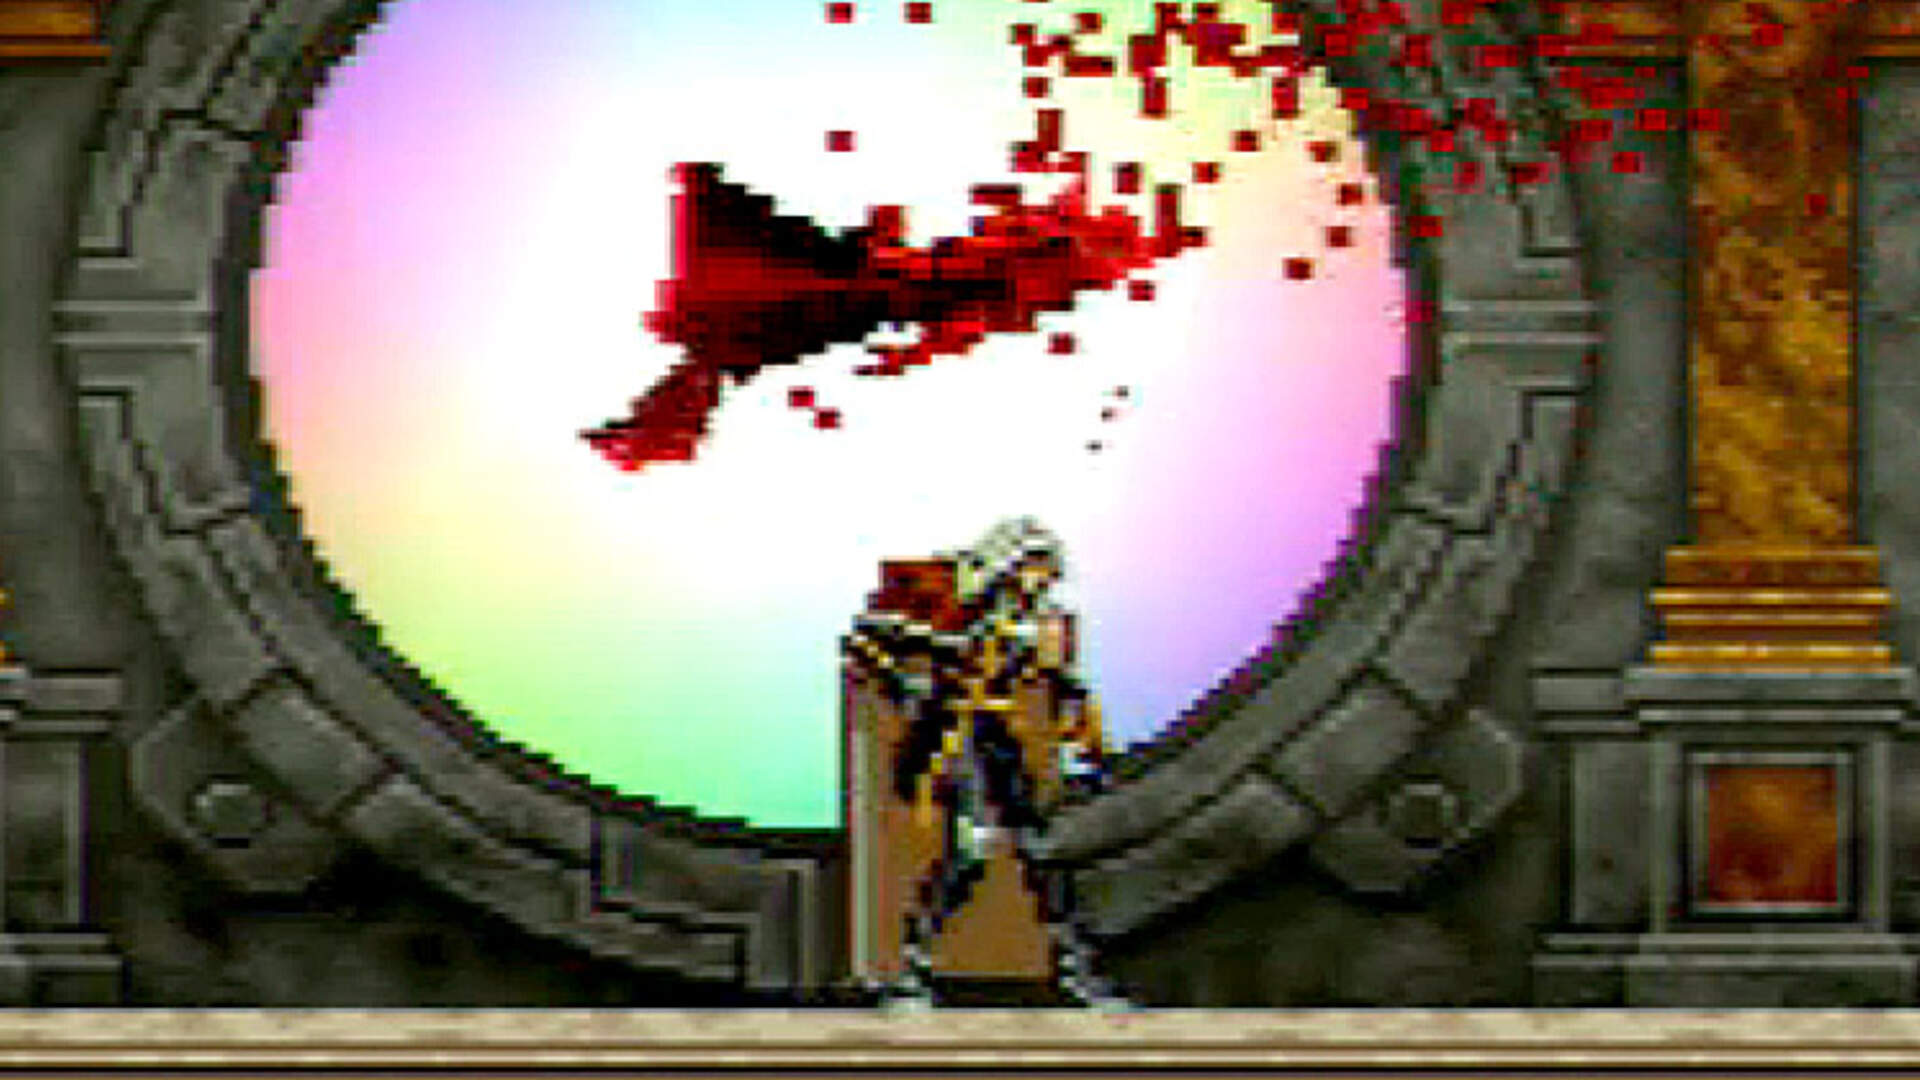 Video Archive: We Press Our Luck in Symphony of the Night (Again) [Archived!]